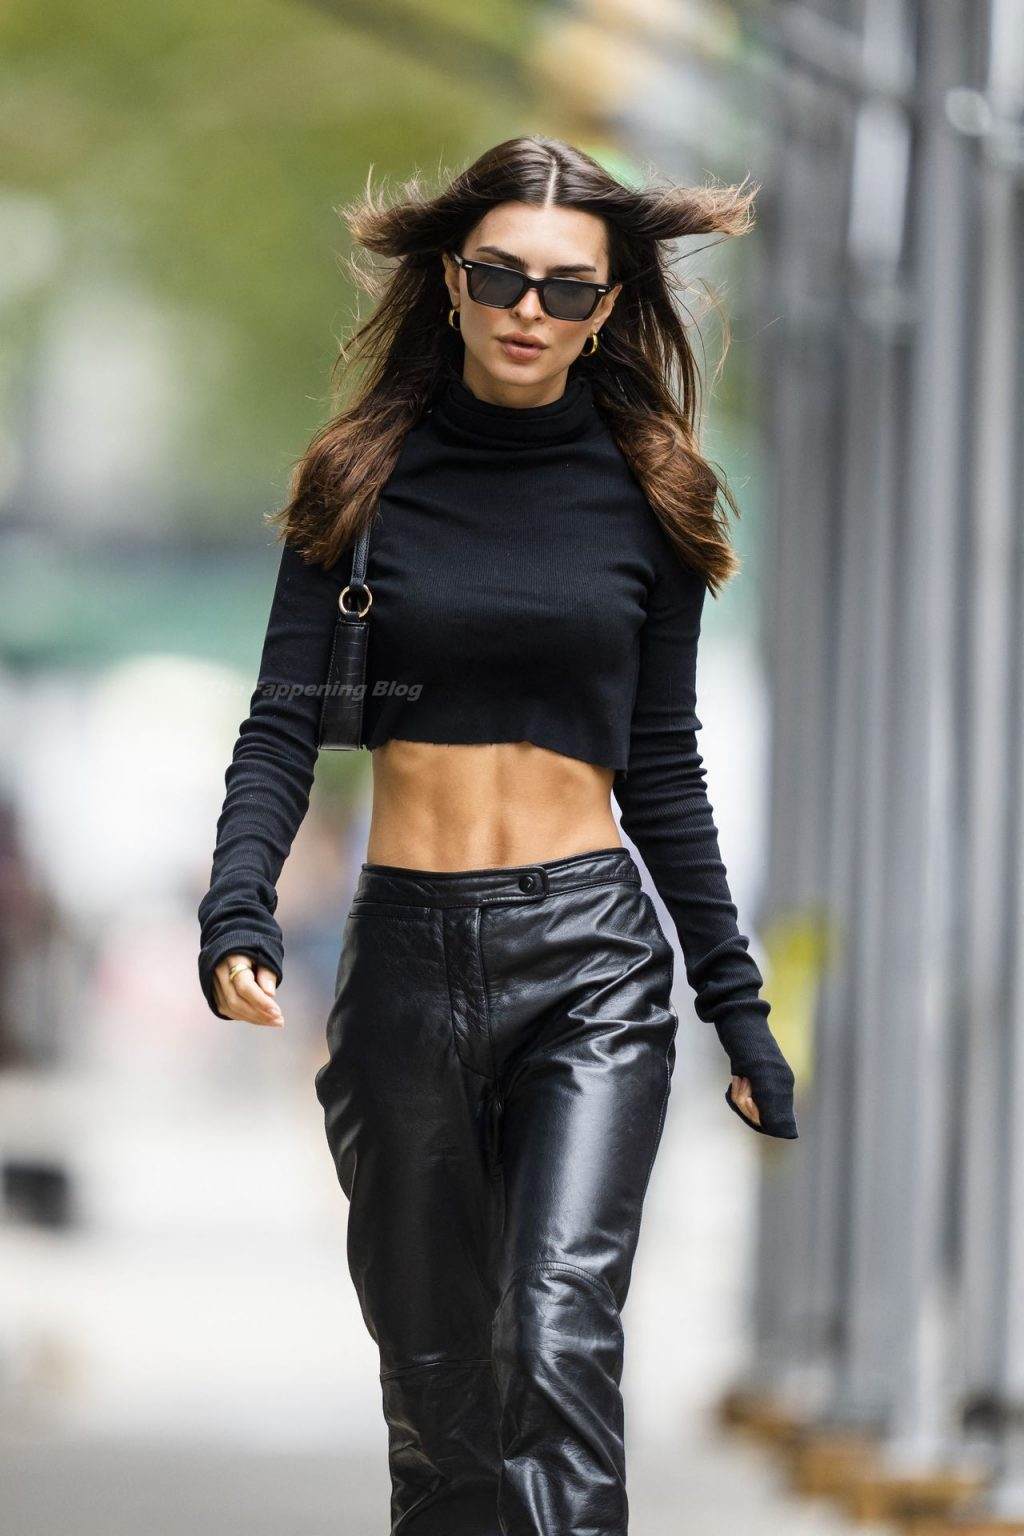 Emily Ratajkowski Shows Off Her Toned Abs While Out For A Stroll In NYC (48 Photos)